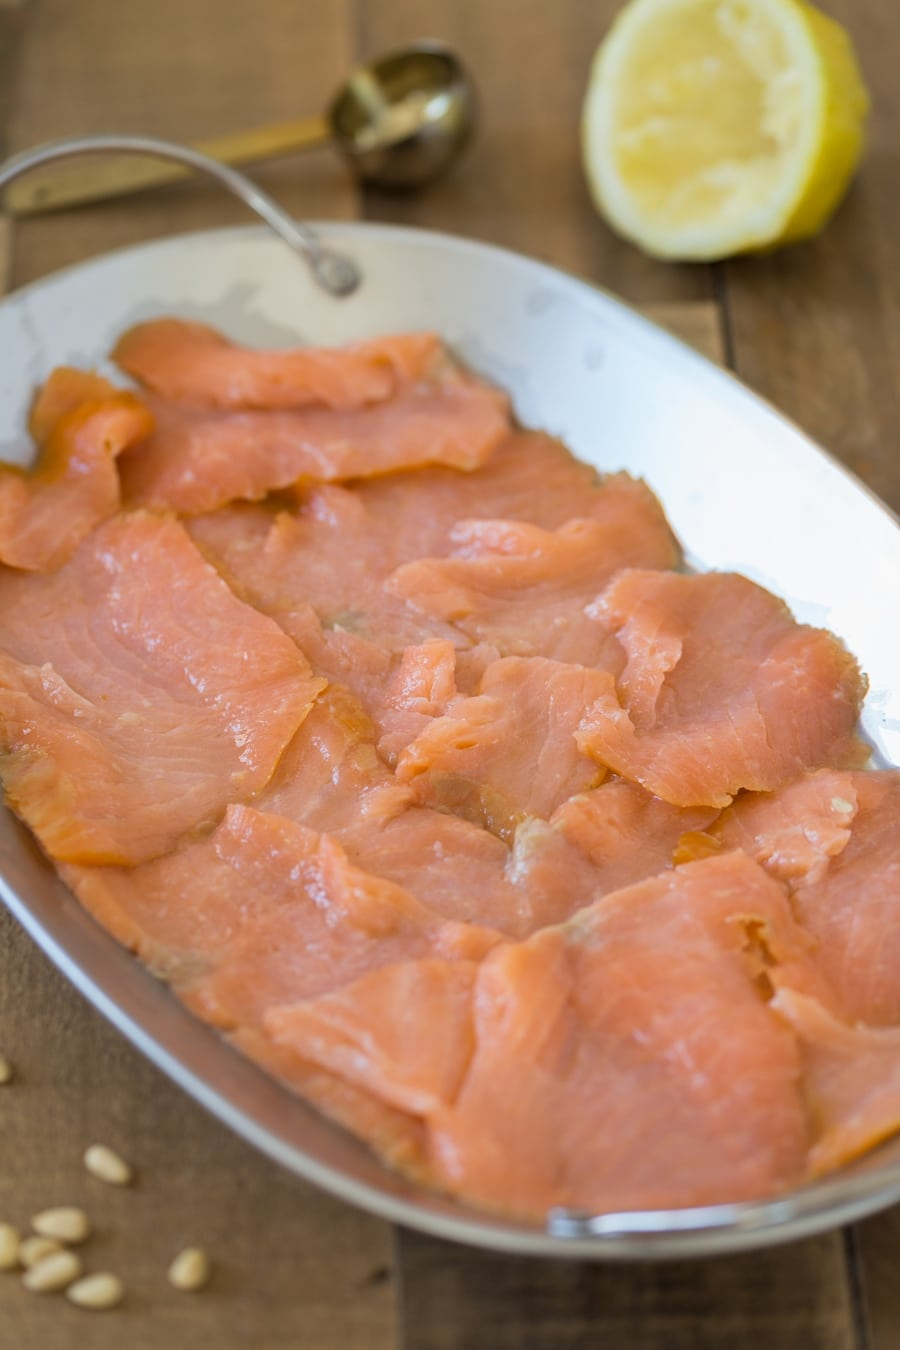 Smoked salmon marinated in lemon juice.